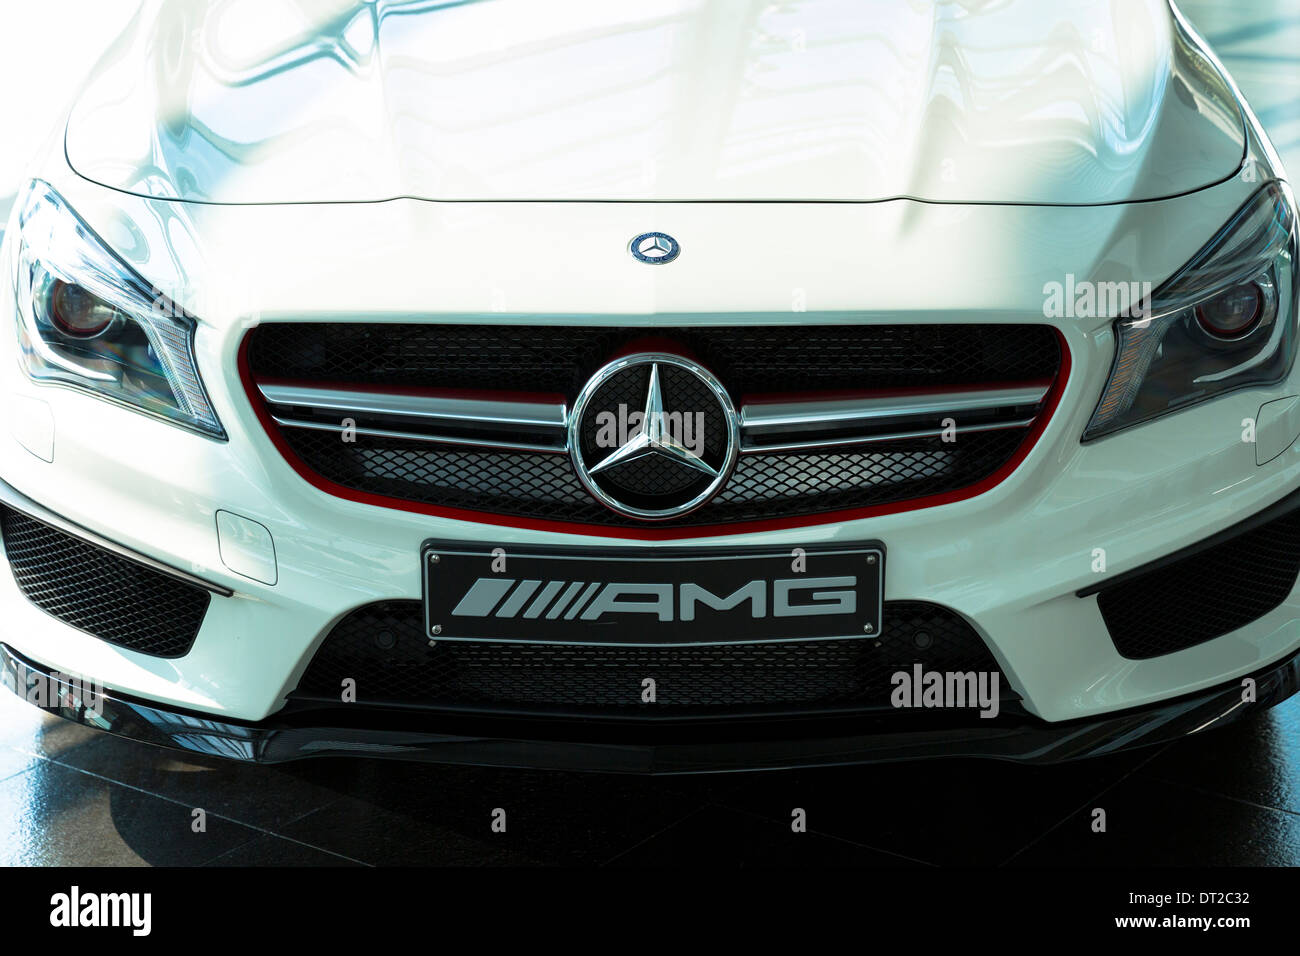 Mercedes-AMG CLA 45 AMG with latest 4 cylinder engine on display in showroom at engine factory in Affalterbach, Germany - Stock Image